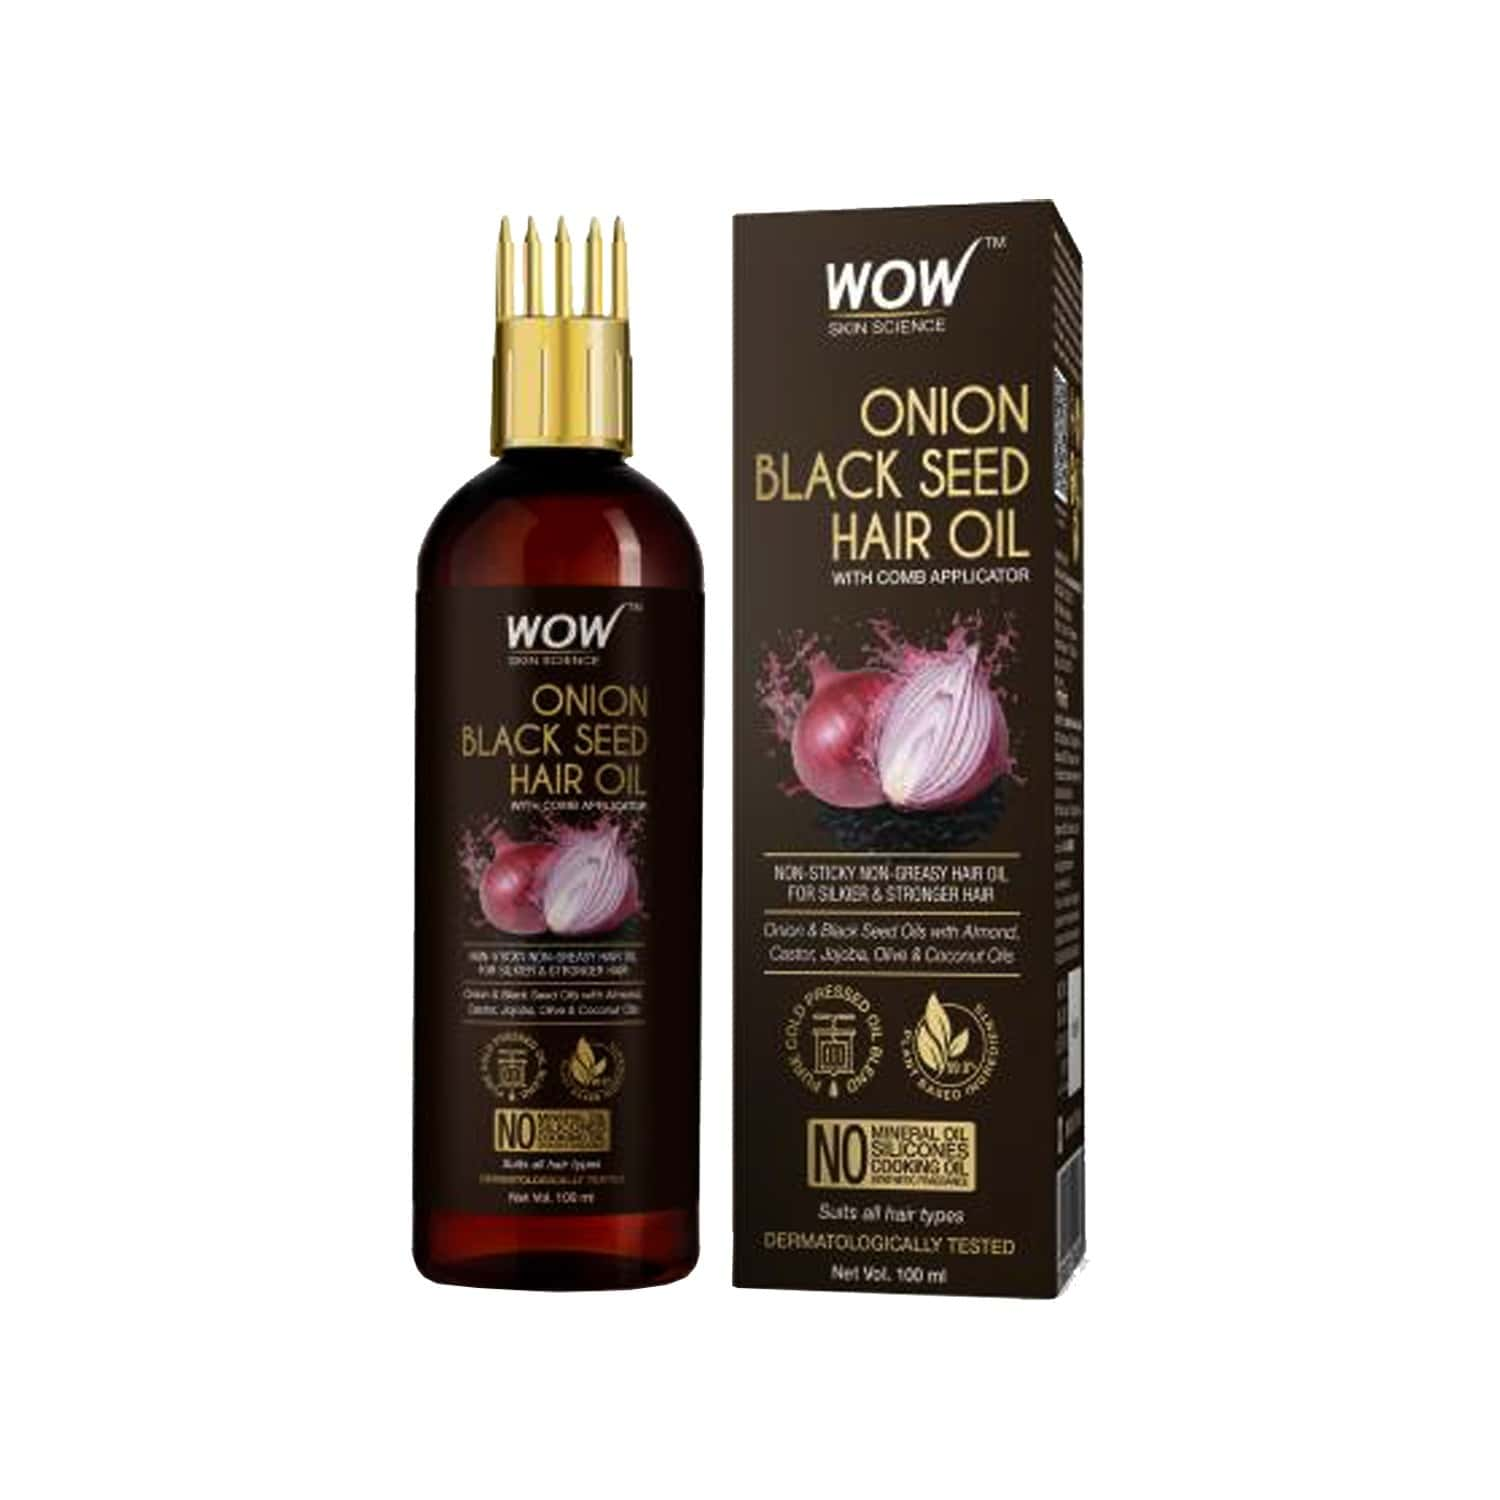 Wow Skin Science Onion Black Seed Hair Oil - 100 Ml With Comb